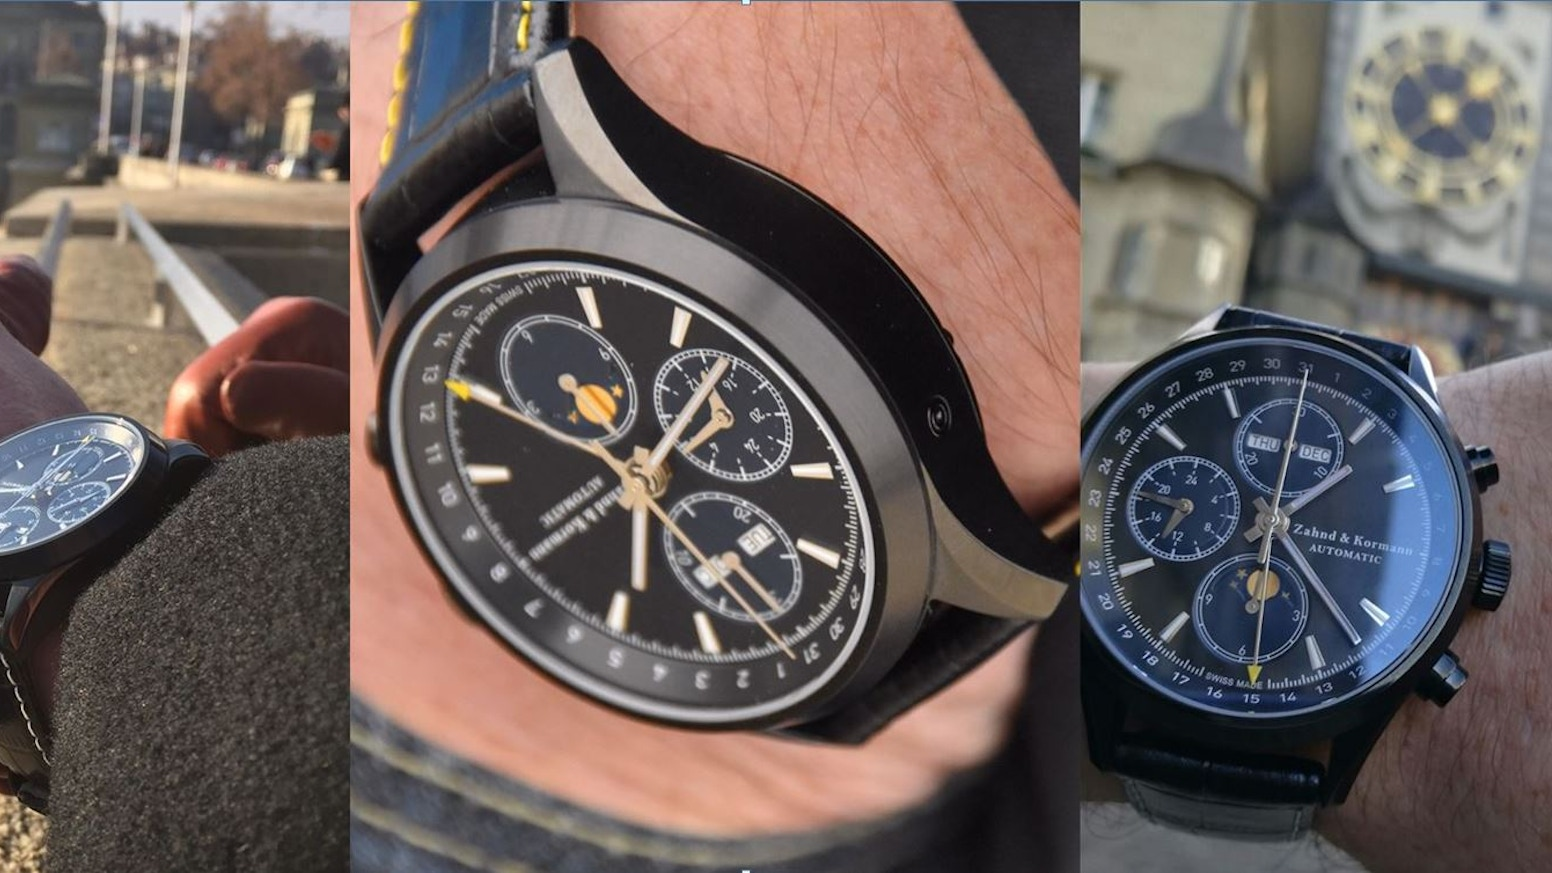 High quality Swiss Made automatic watches (ETA Valjoux 7751) - BEST VALUE OFFER - Making REAL quality affordable - Time is YOURS!